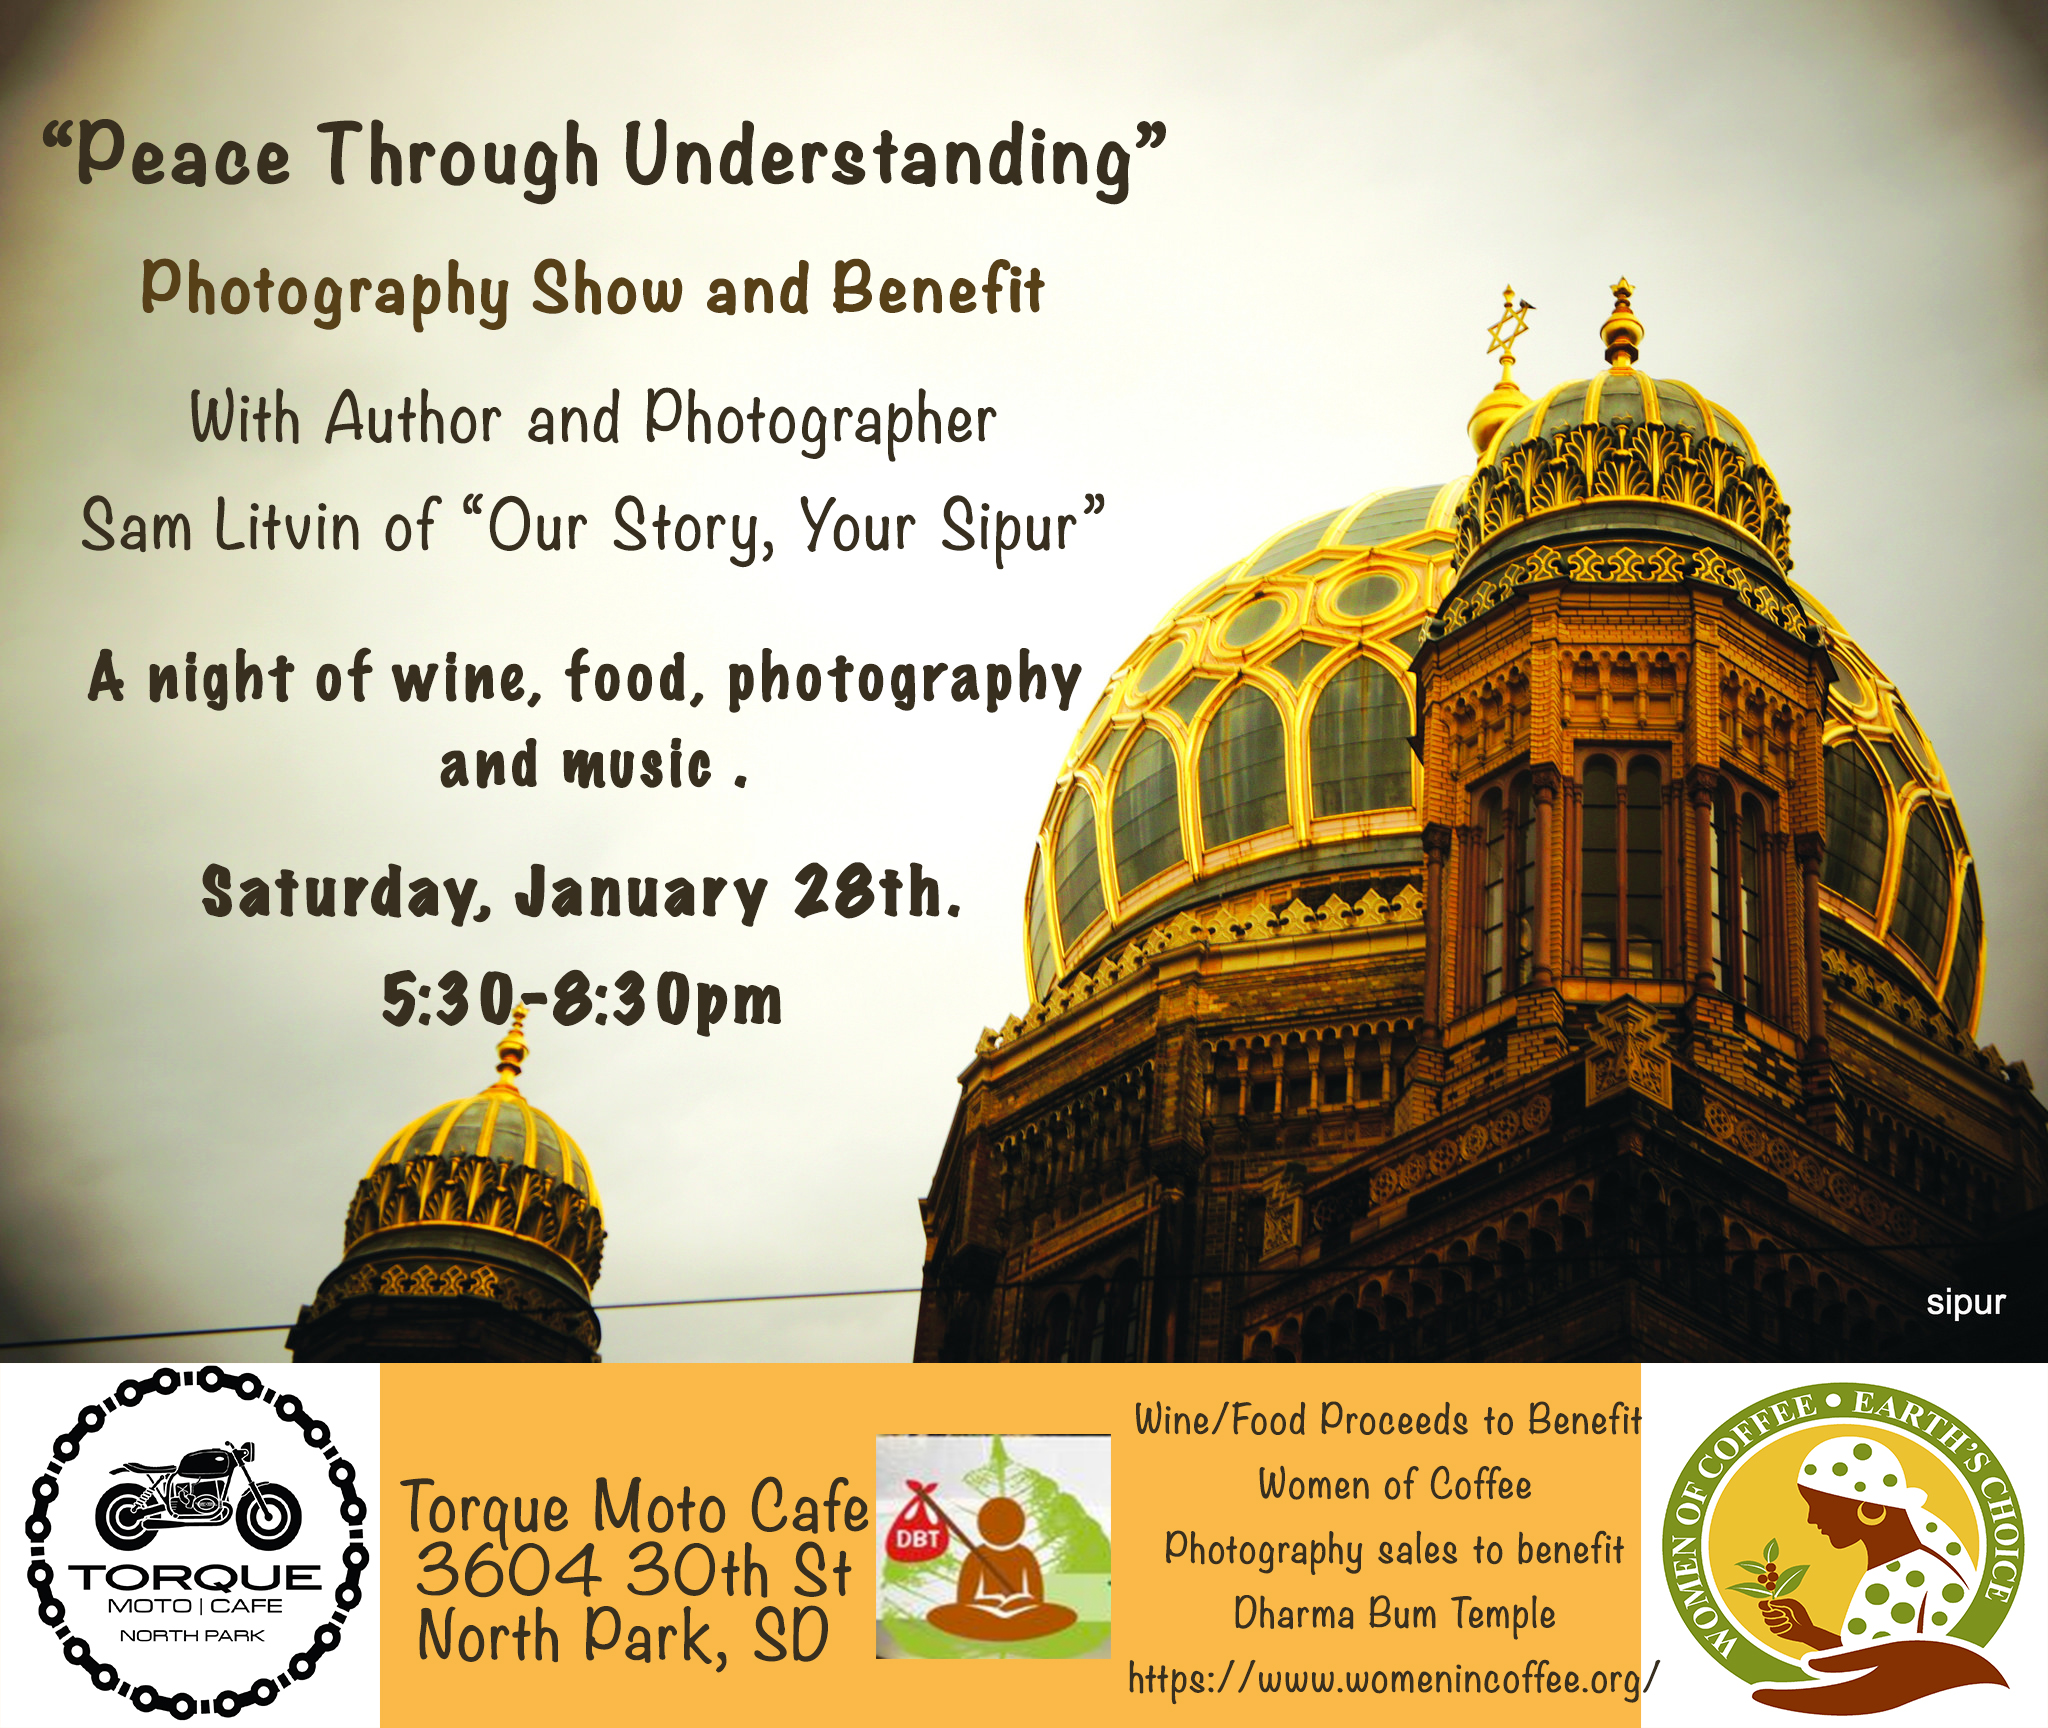 Peace Through Understanding photography show